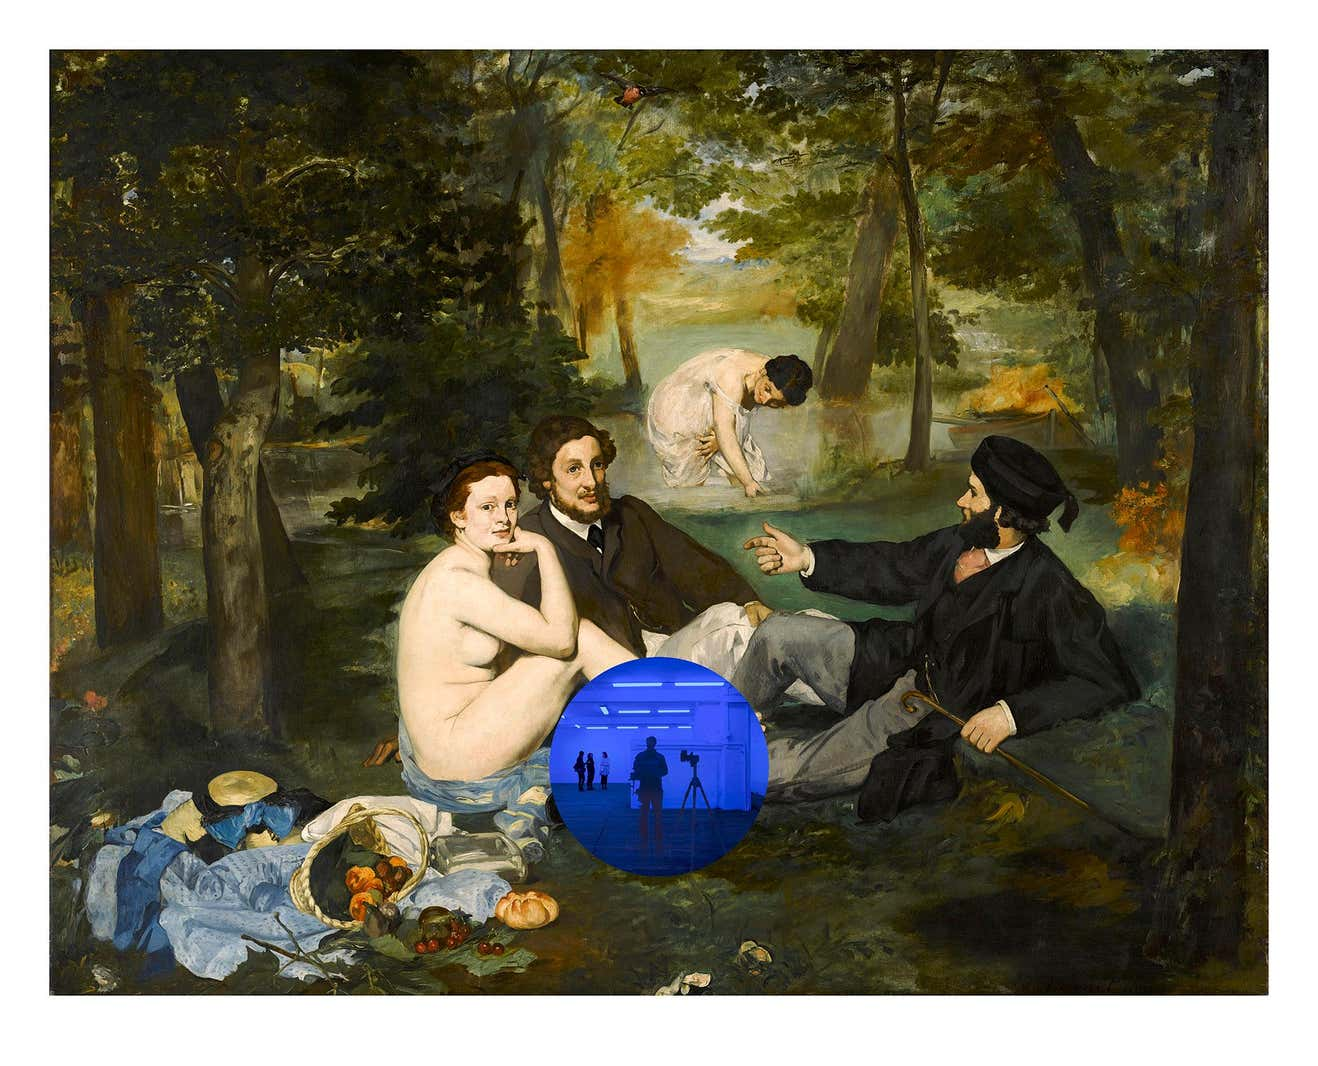 Manet_Luncheon_on_the_Grass_master.jpg?disable=upscale&auto=webp&quality=60&width=1318